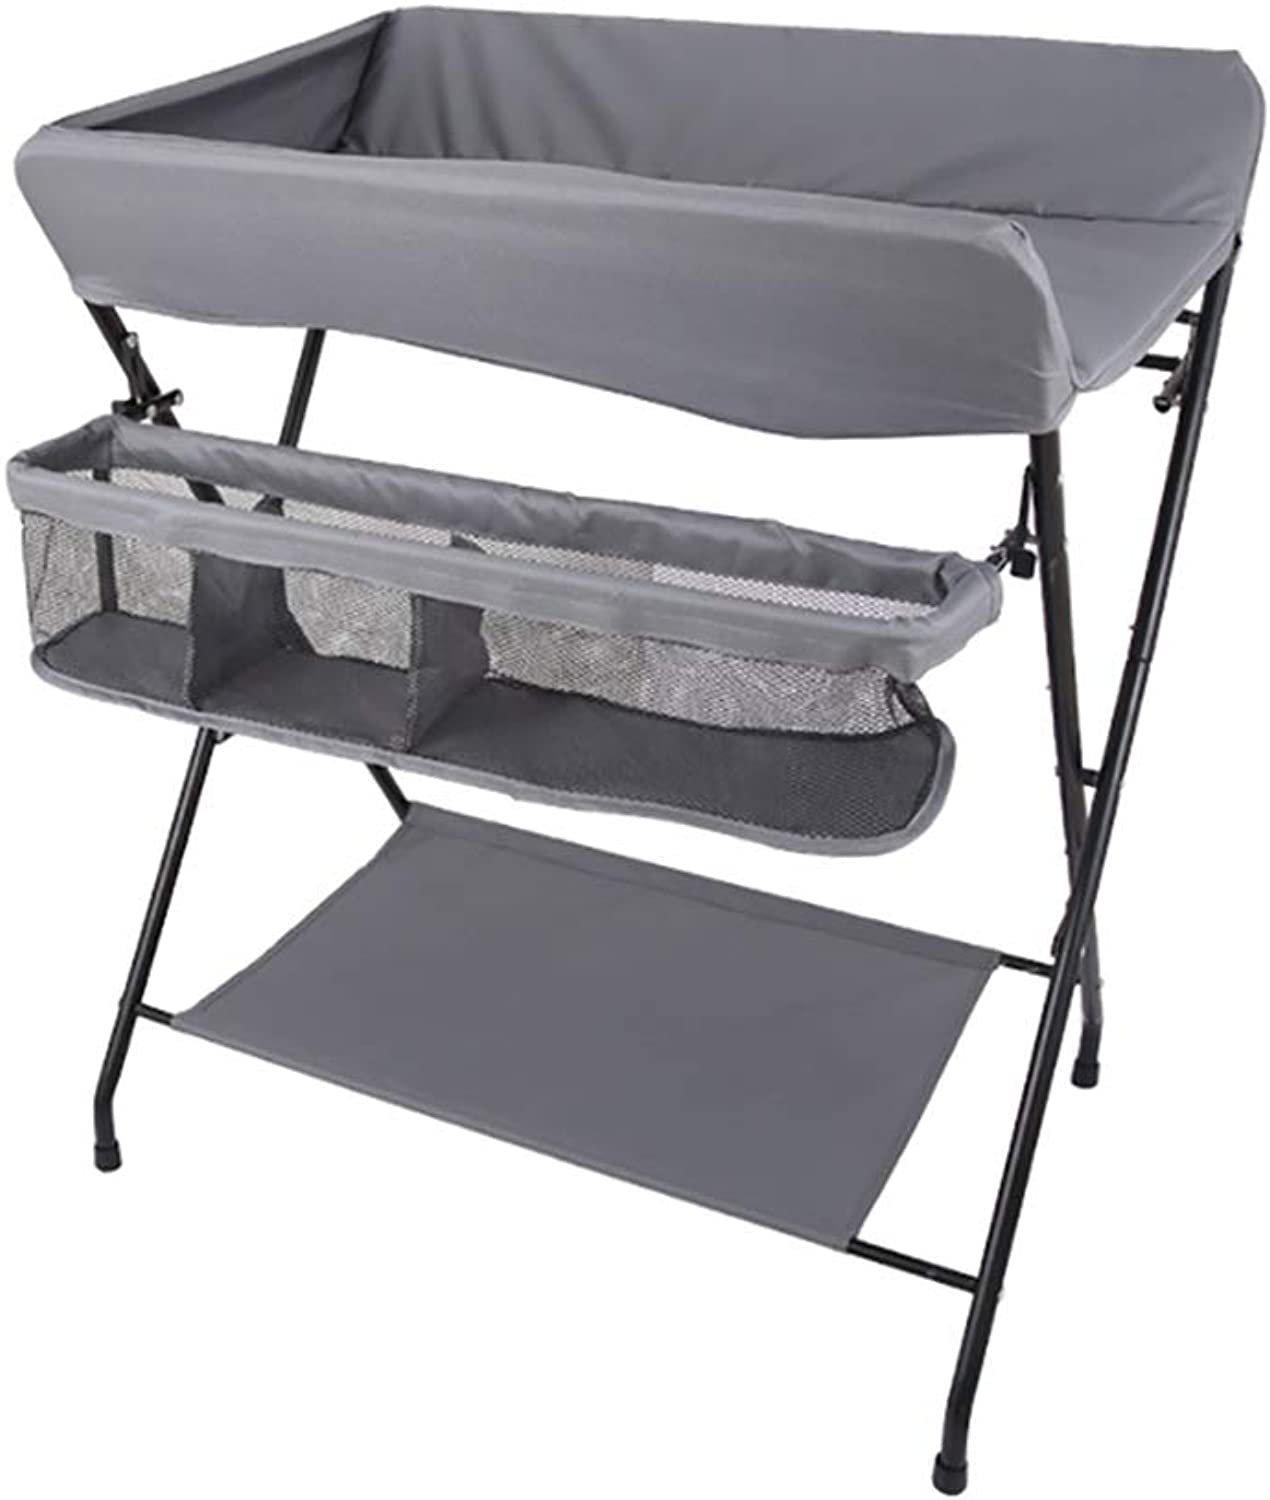 Foldable Baby Changing Diaper Table, Portable Diaper Organizer Station Dresser, Perfect for 0-3 Years Old Toddler (color   Style2)